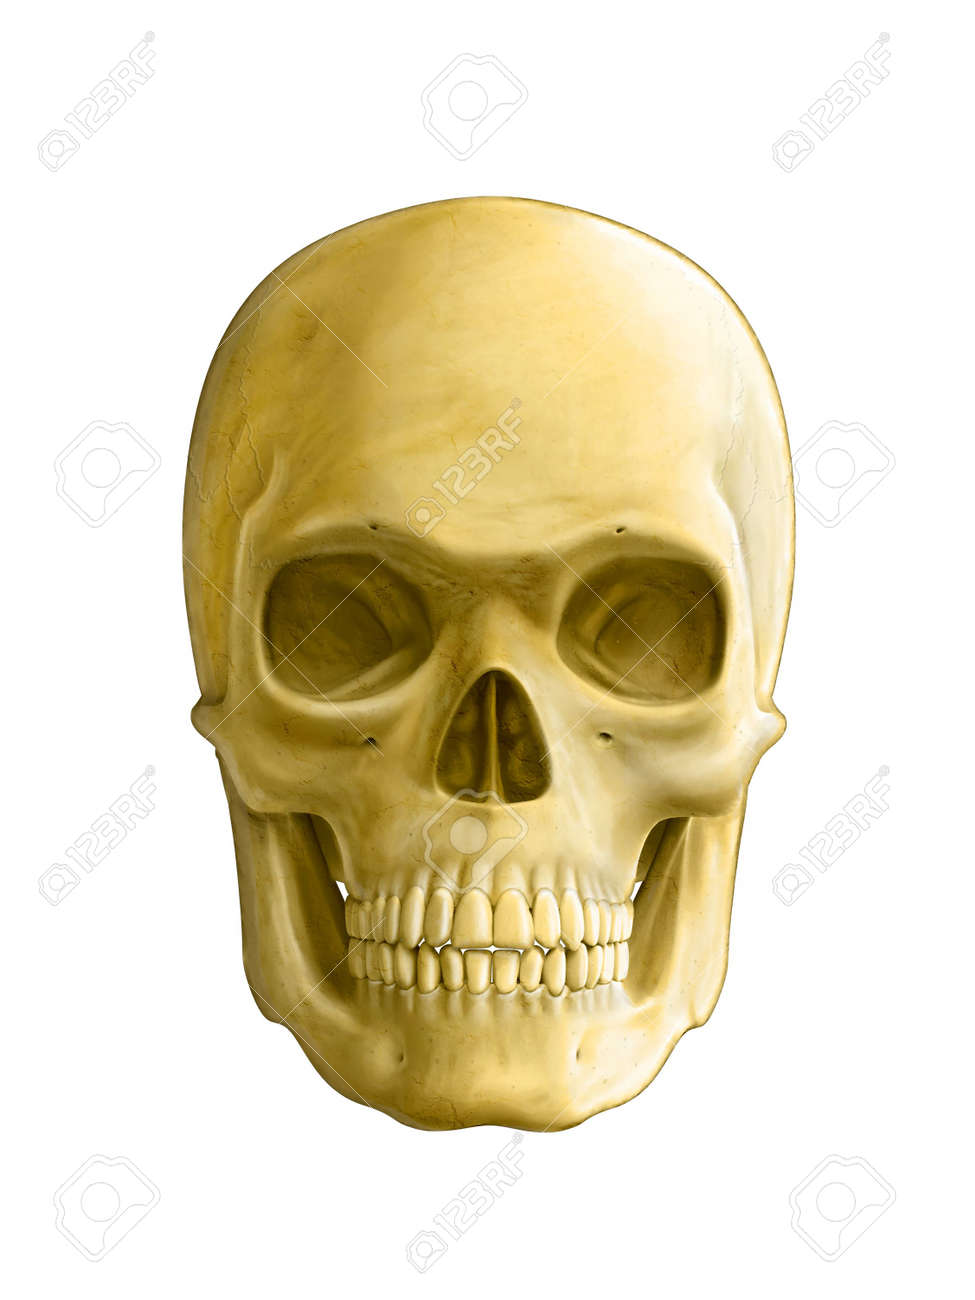 Human Skull Front View Digital Illustration Stock Photo Picture